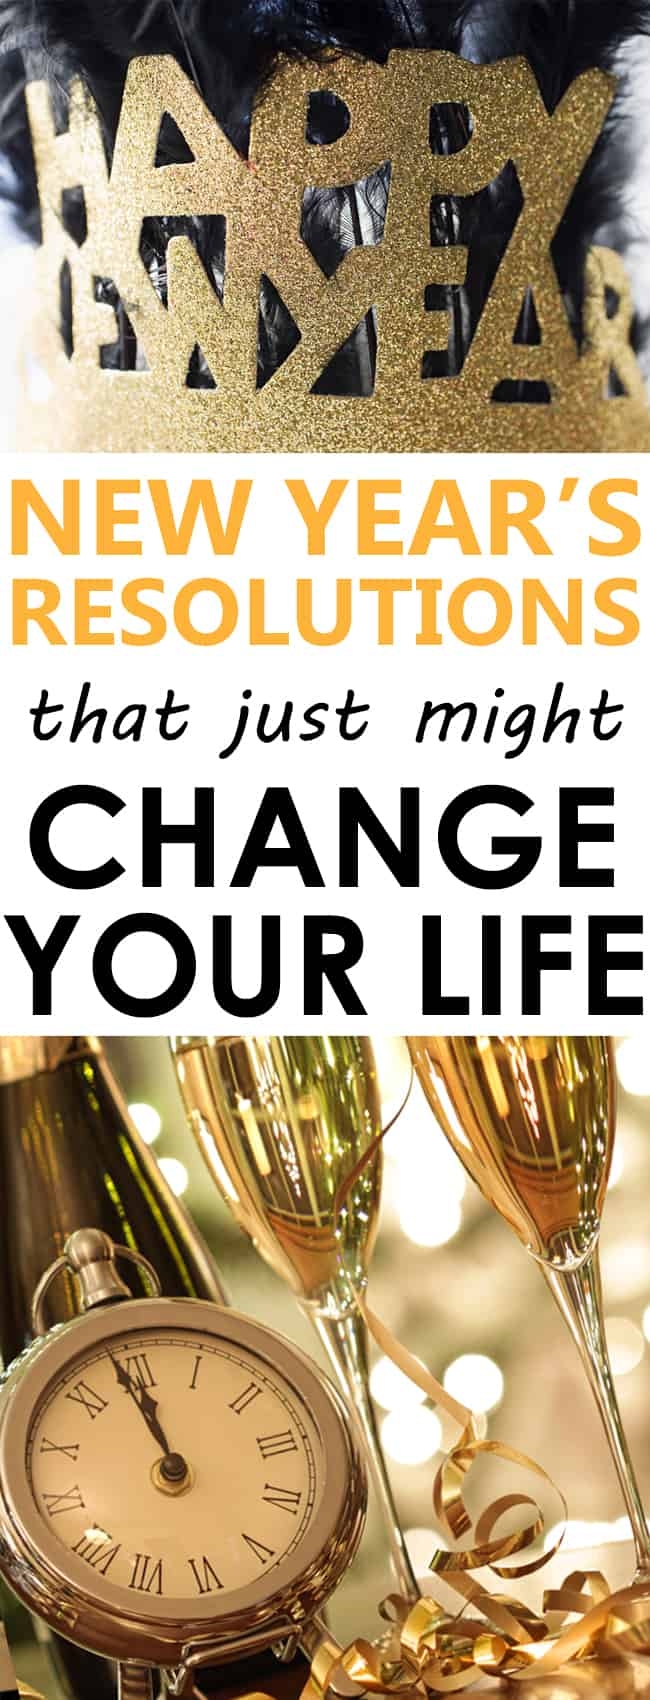 new years resolution ideas that just might change your life for good!